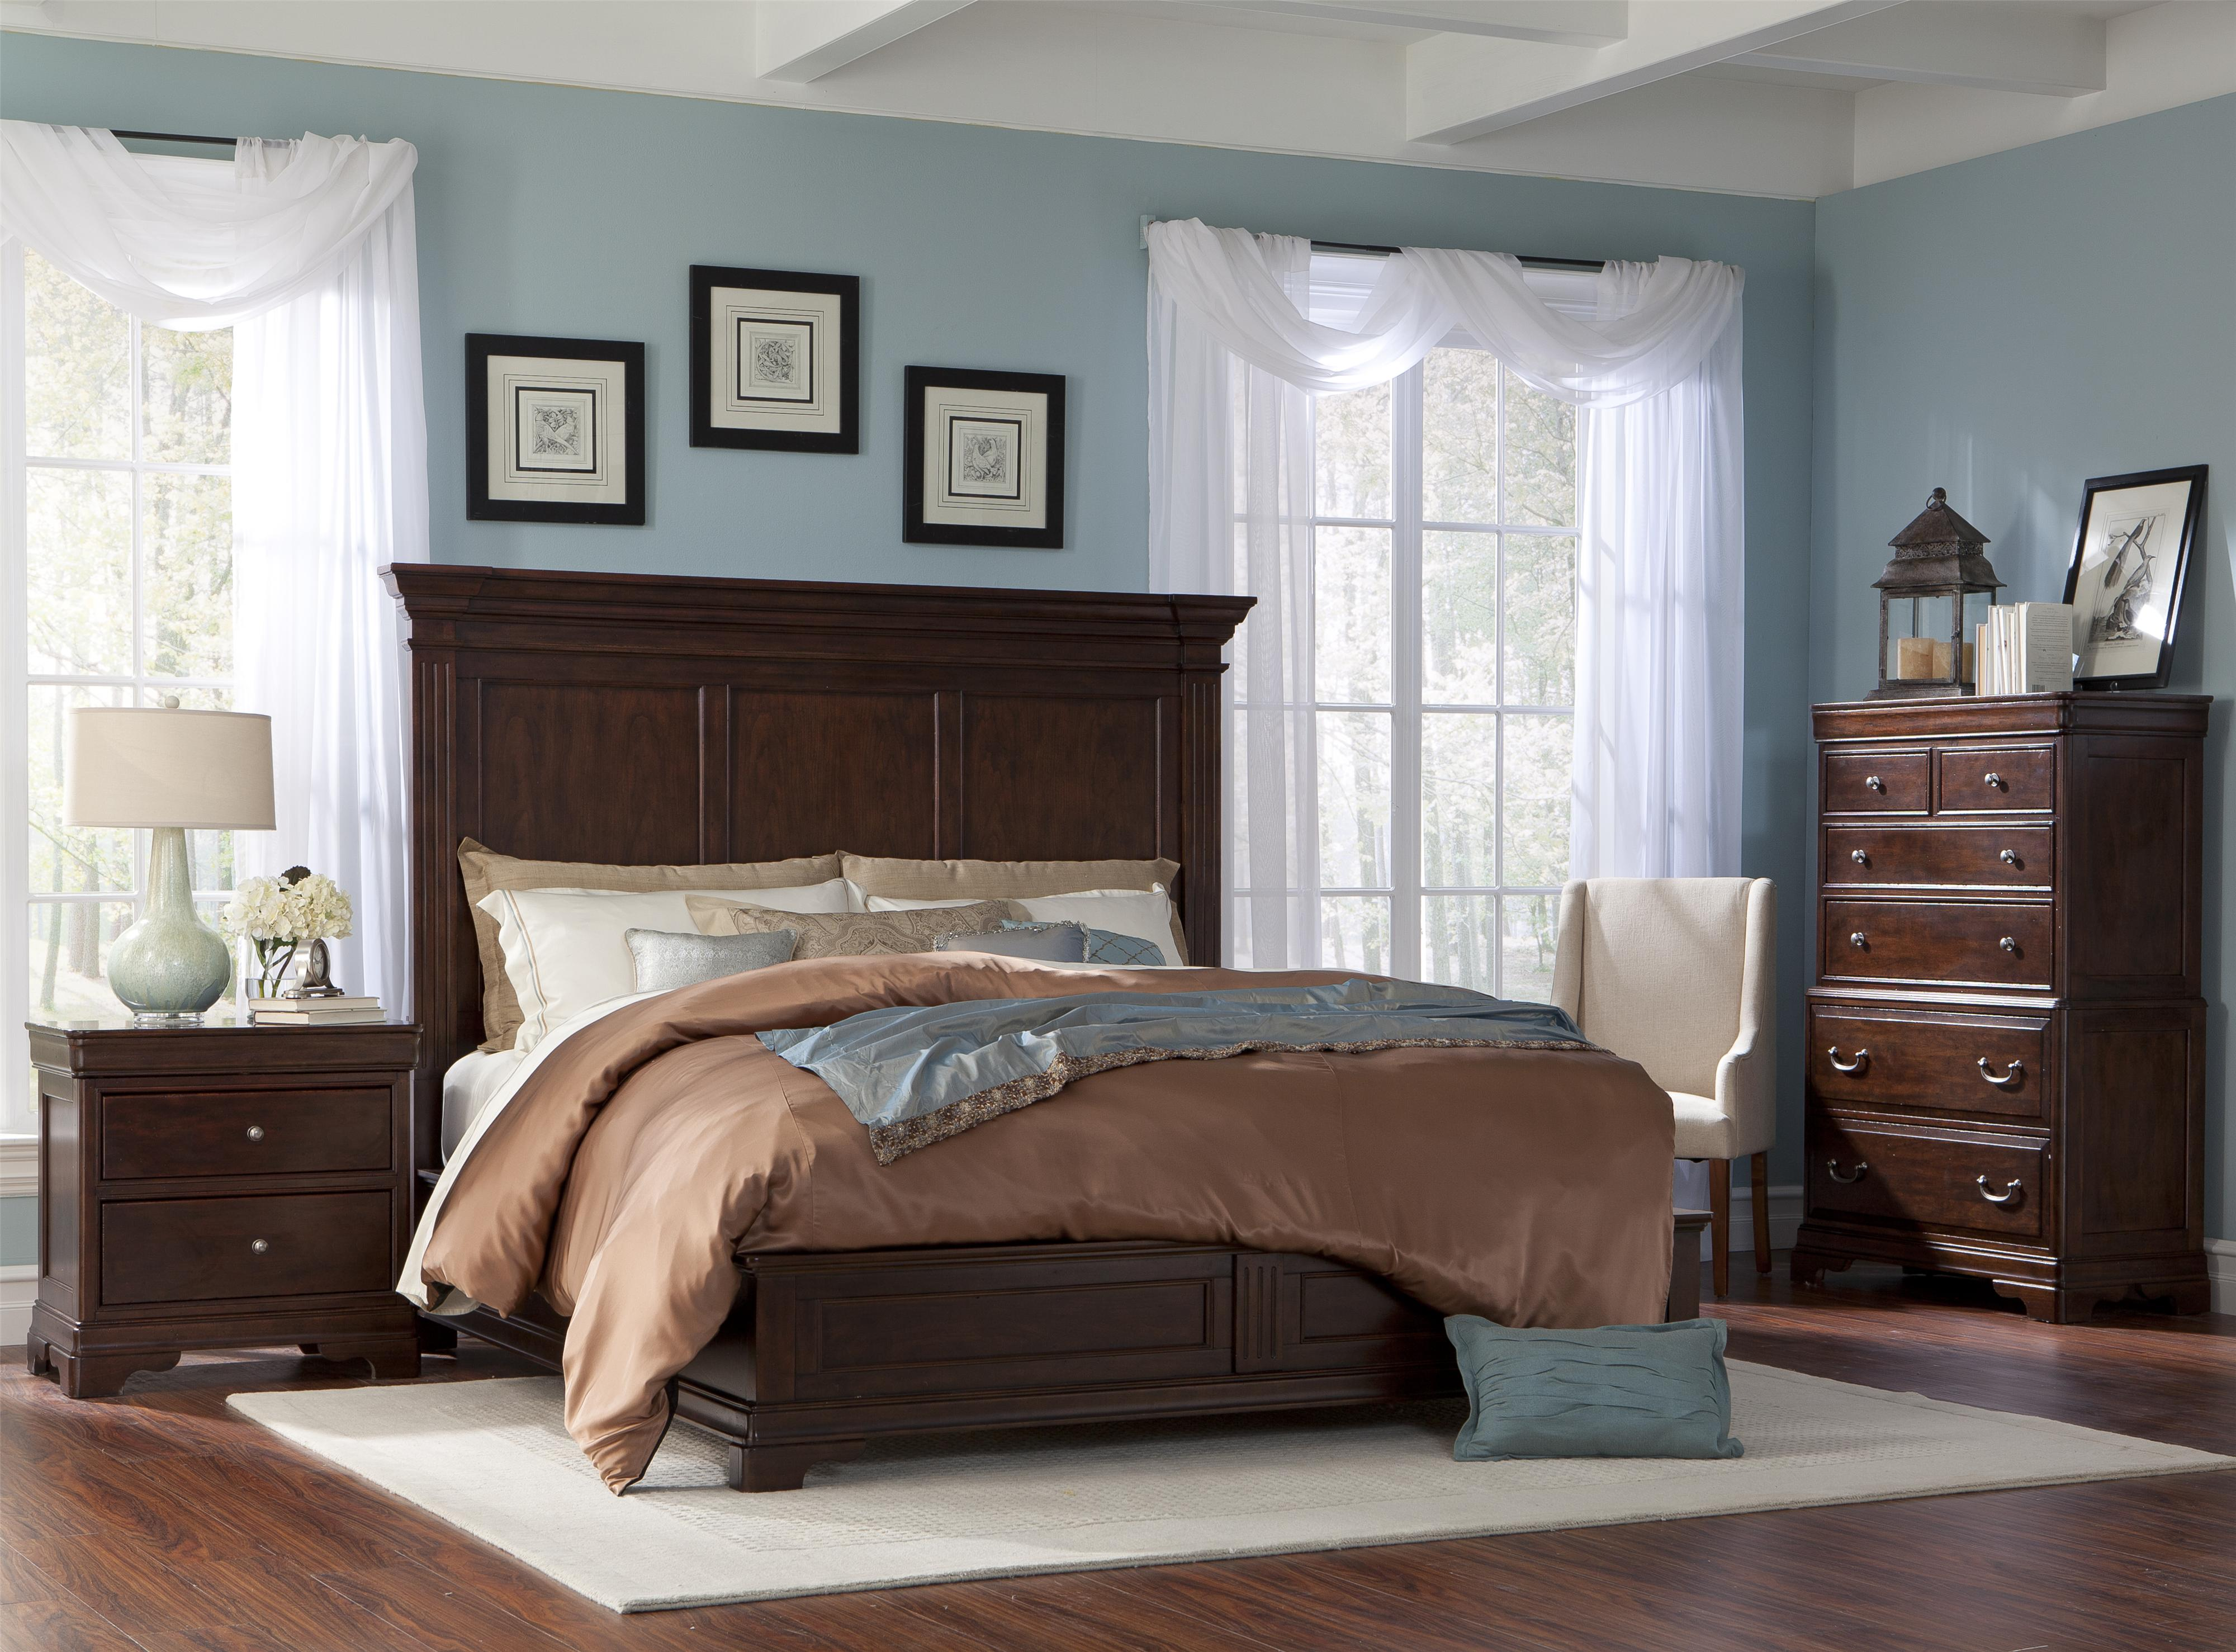 Cresent Fine Furniture Provence Queen Bedroom Group - Item Number: 1700 Q Bedroom Group 1